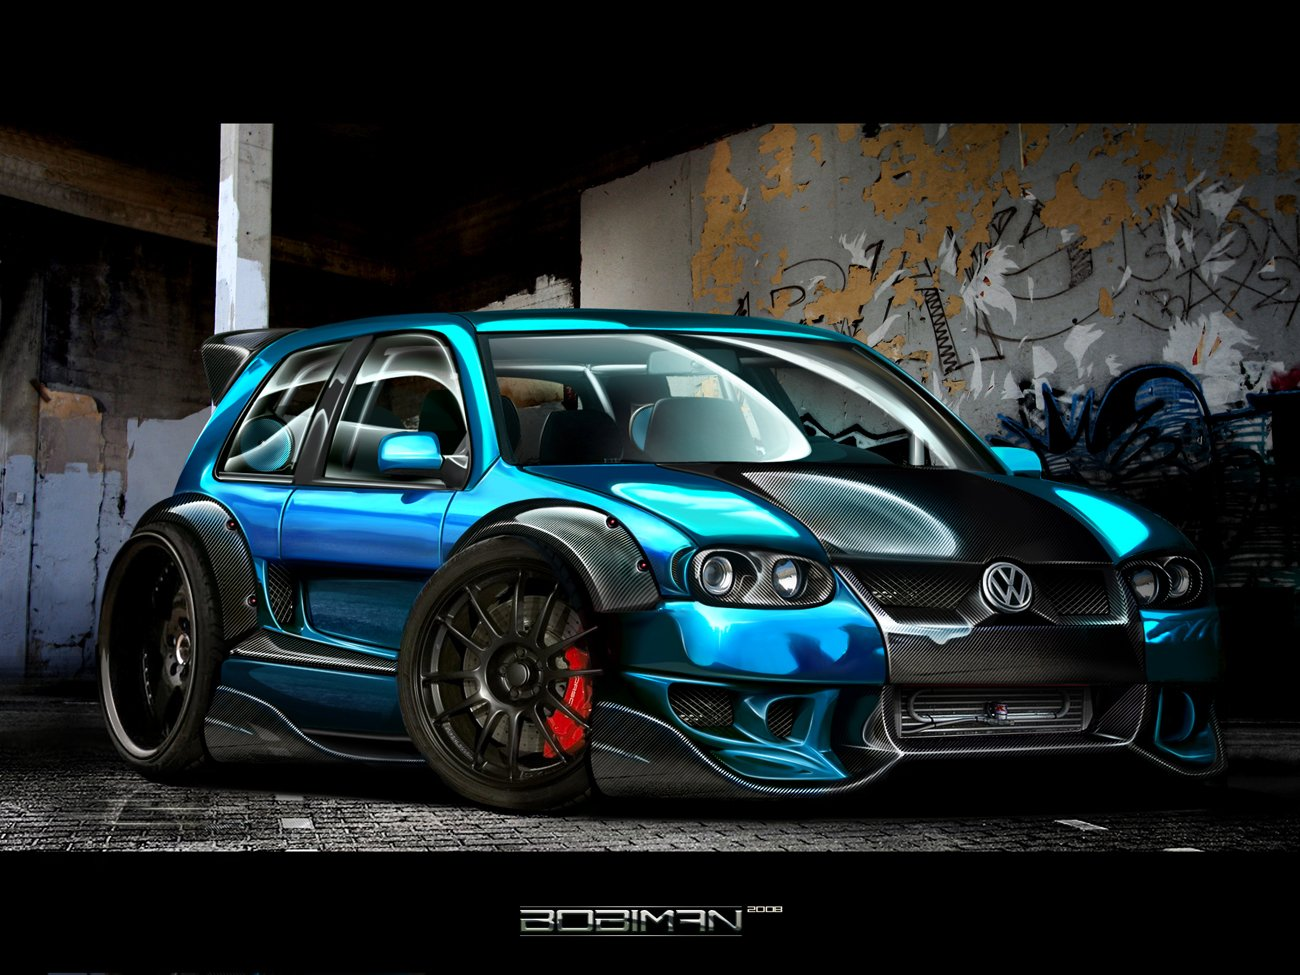 super fast cars wallpapers Cars And Carriages 1300x975